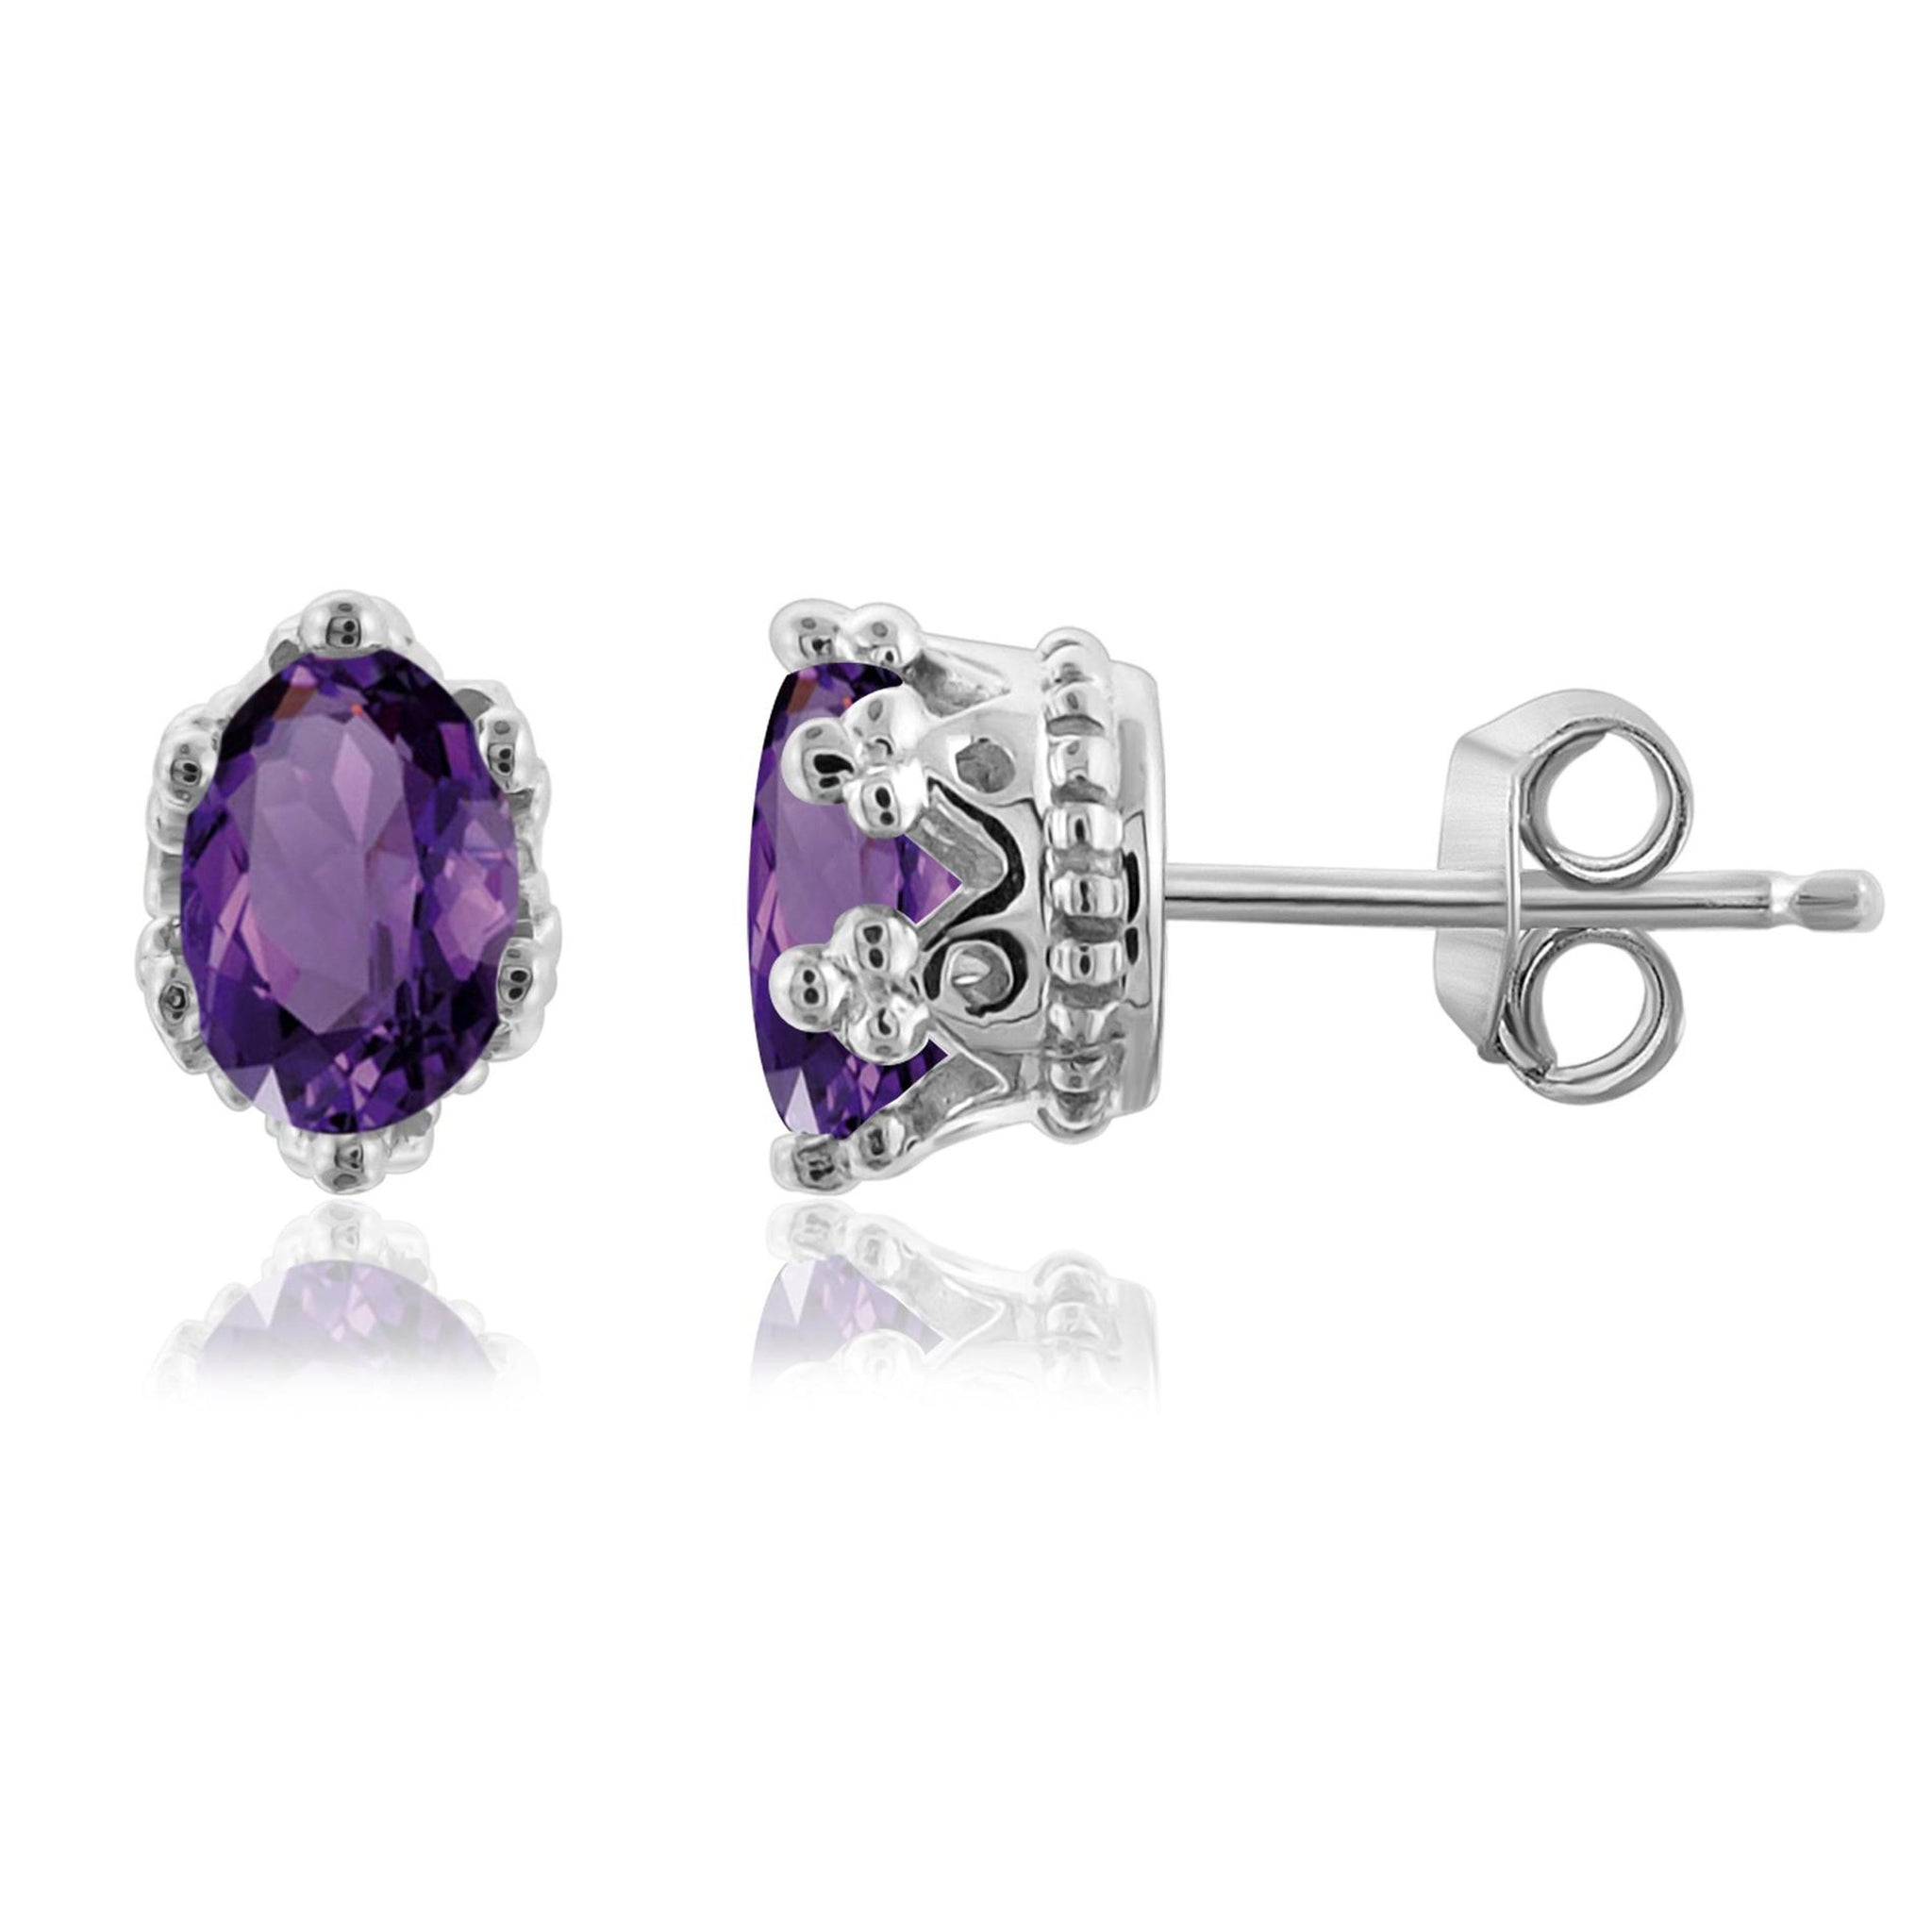 JewelonFire 3/4 Carat T.G.W. Amethyst Sterling Silver Earrings - Assorted Colors